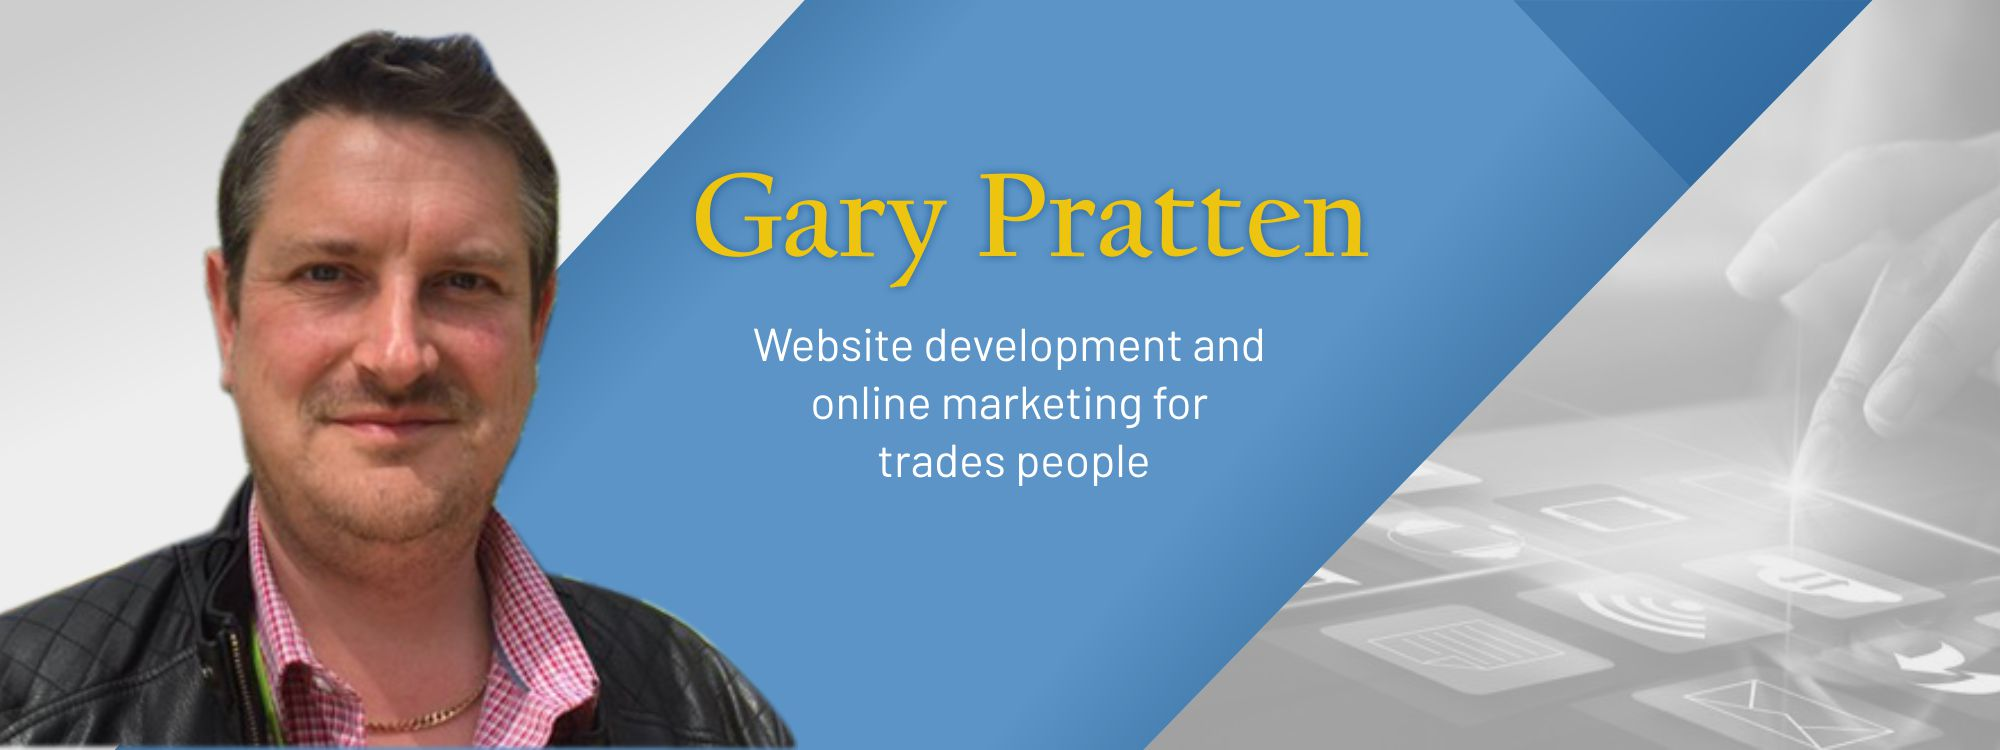 Gary Pratten Website developer and marketer for trades people